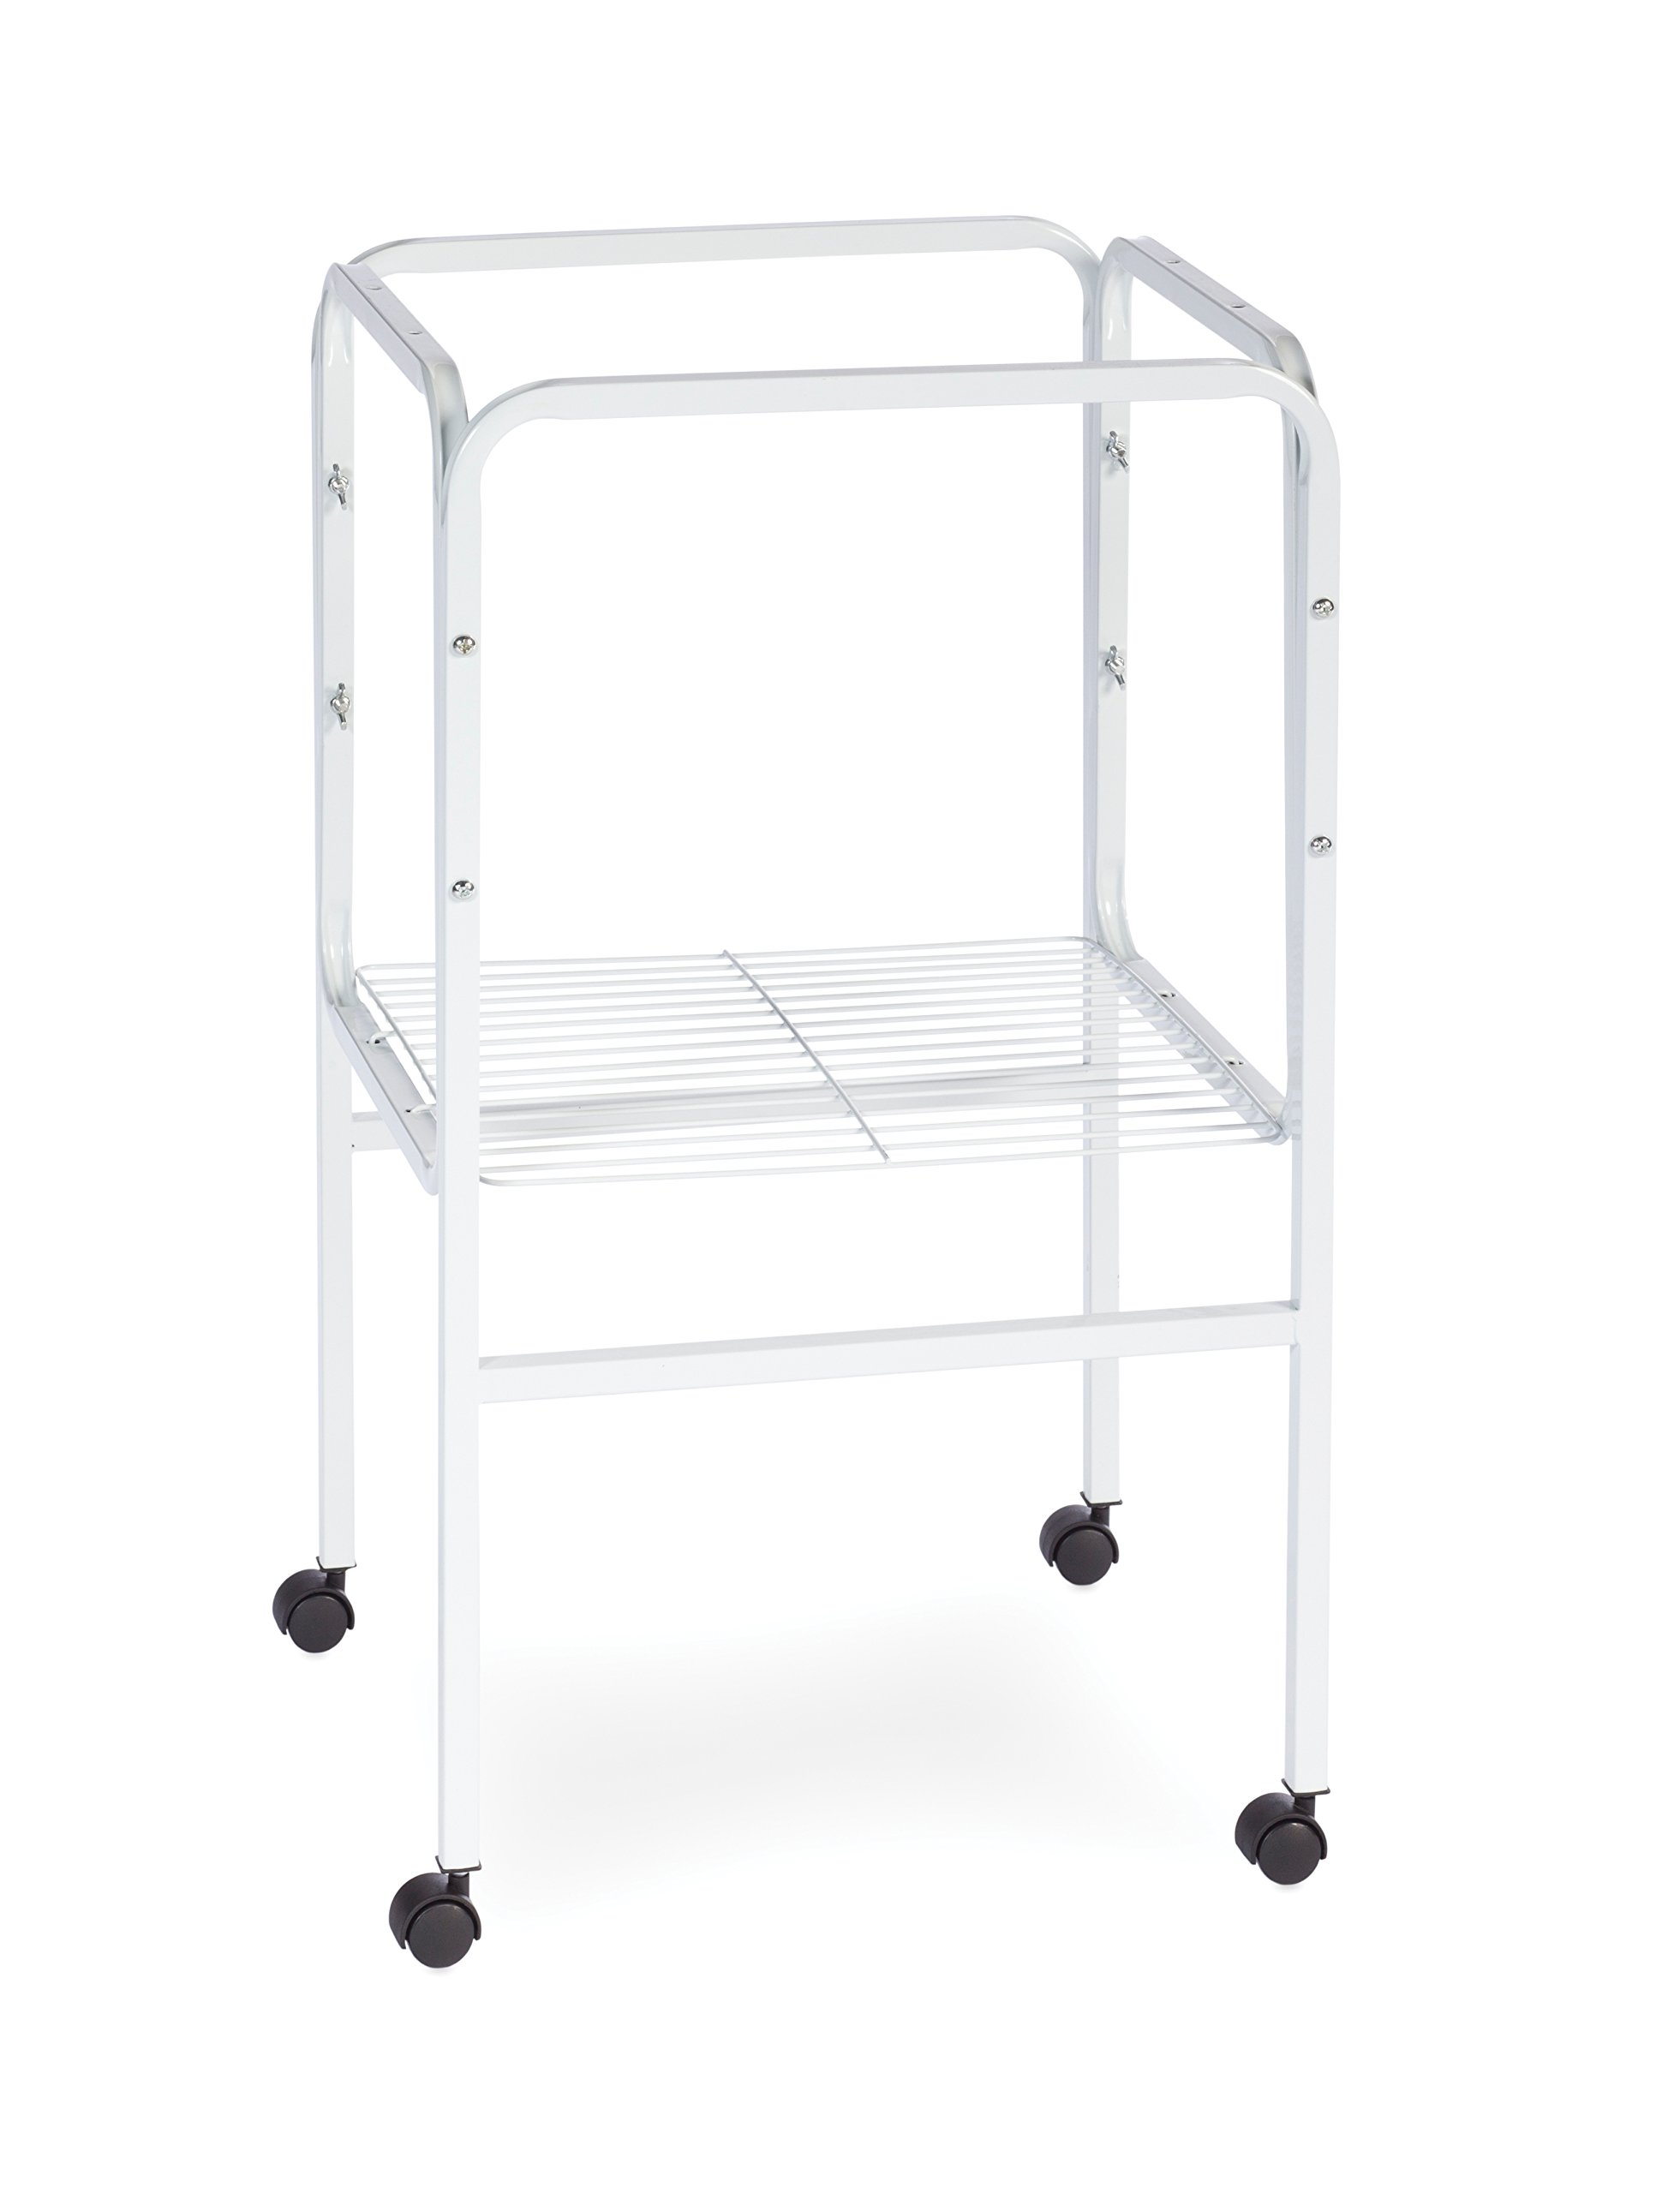 Prevue Pet Products SP445W Bird Cage Stand with Shelf, White by Prevue Pet Products